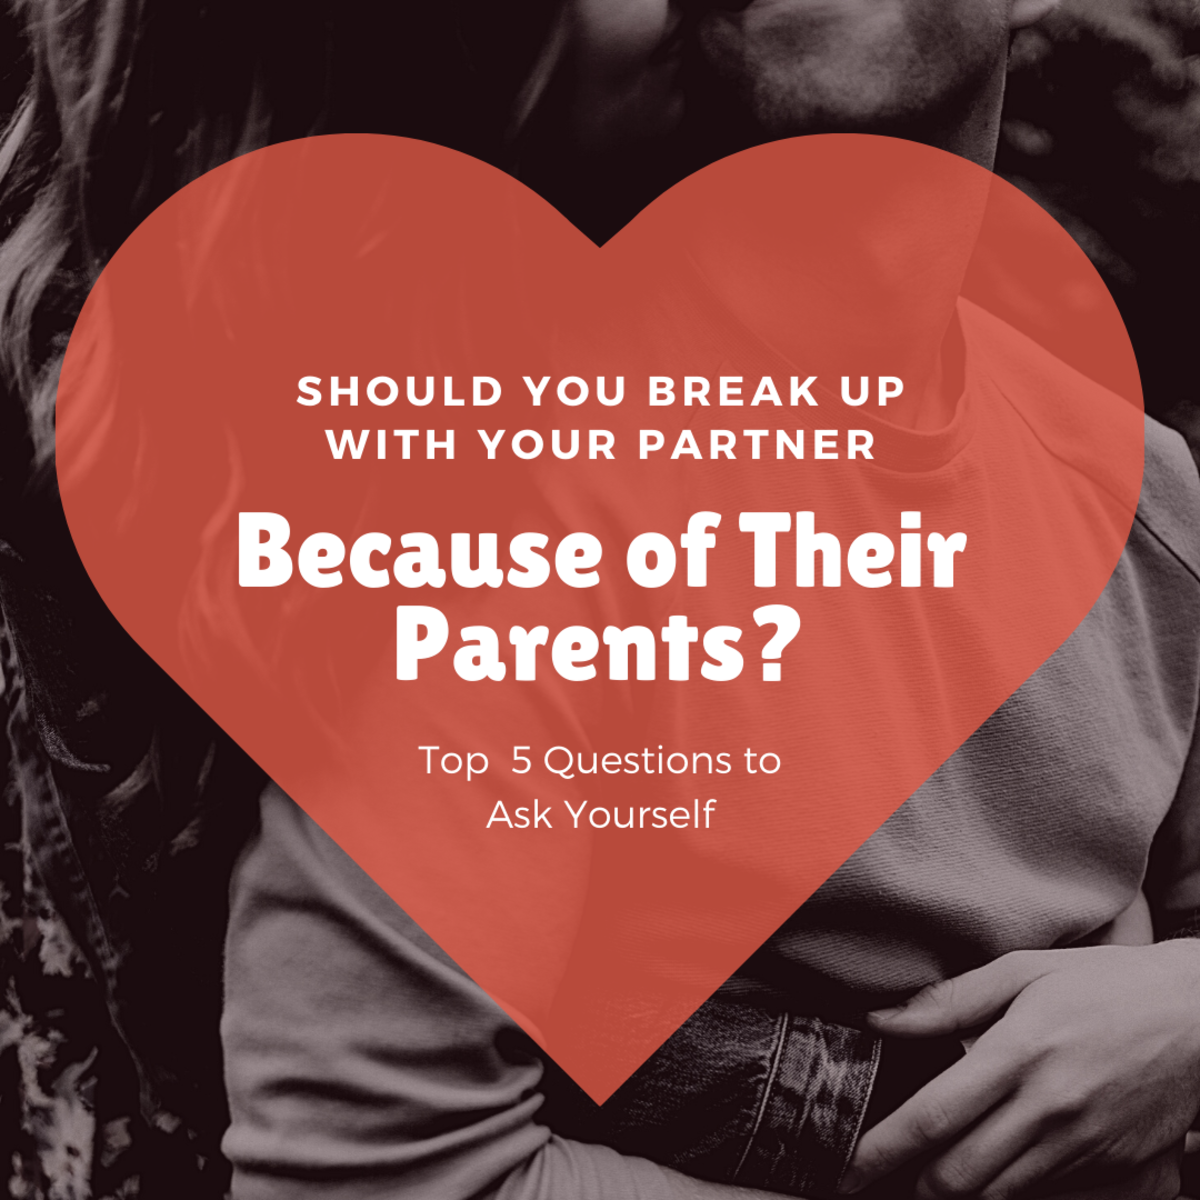 Figure out whether or not it's a good idea to break up with your partner because of their parents.